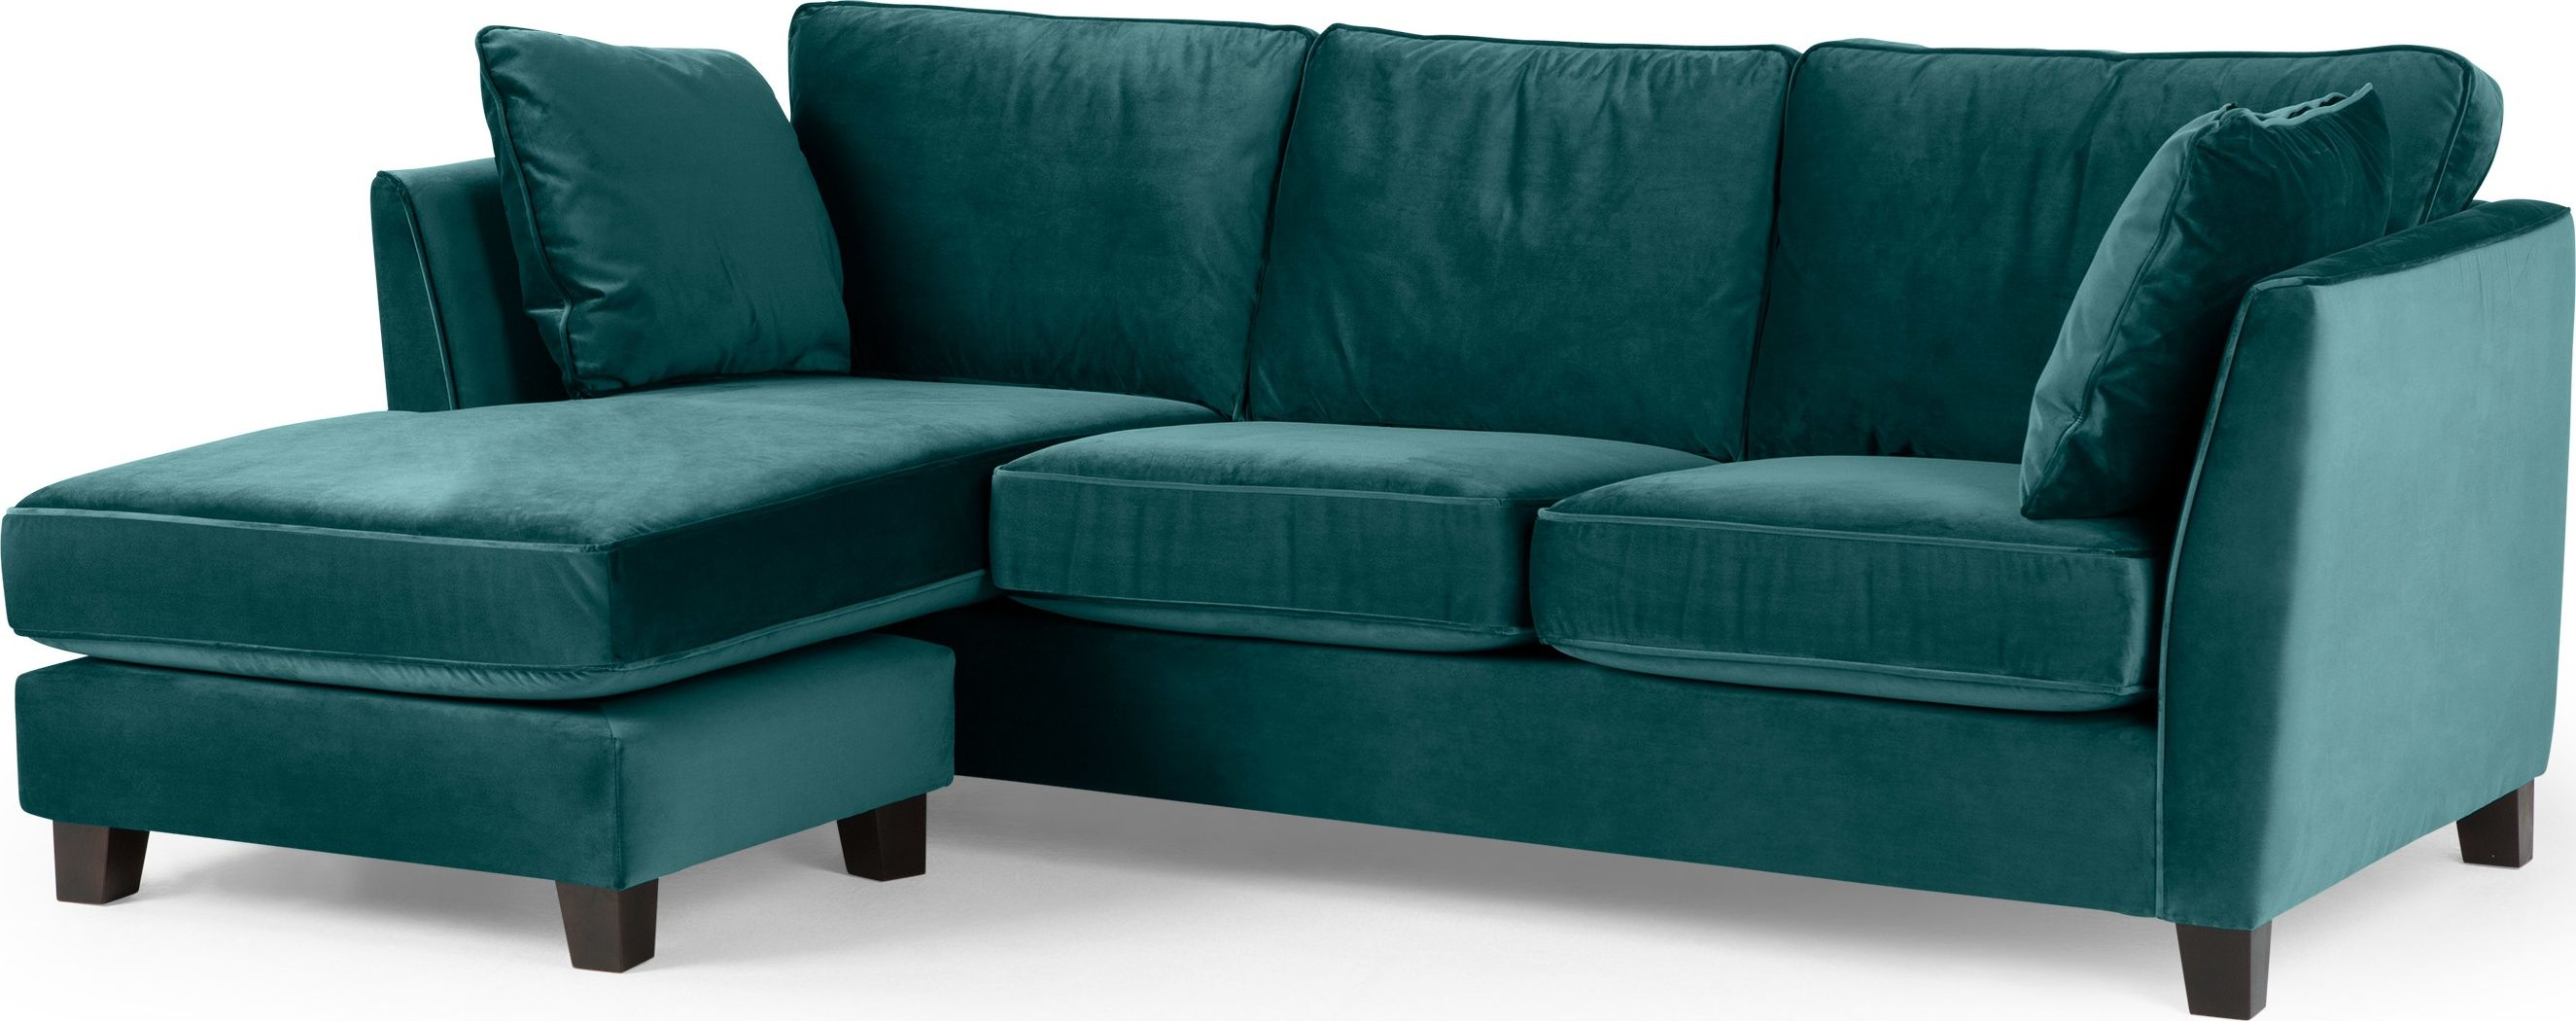 Wolseley Large Corner Sofa Pea Blue From Made Created In Collaboration With Home Expert And Presenter Alison Cork The Collectio